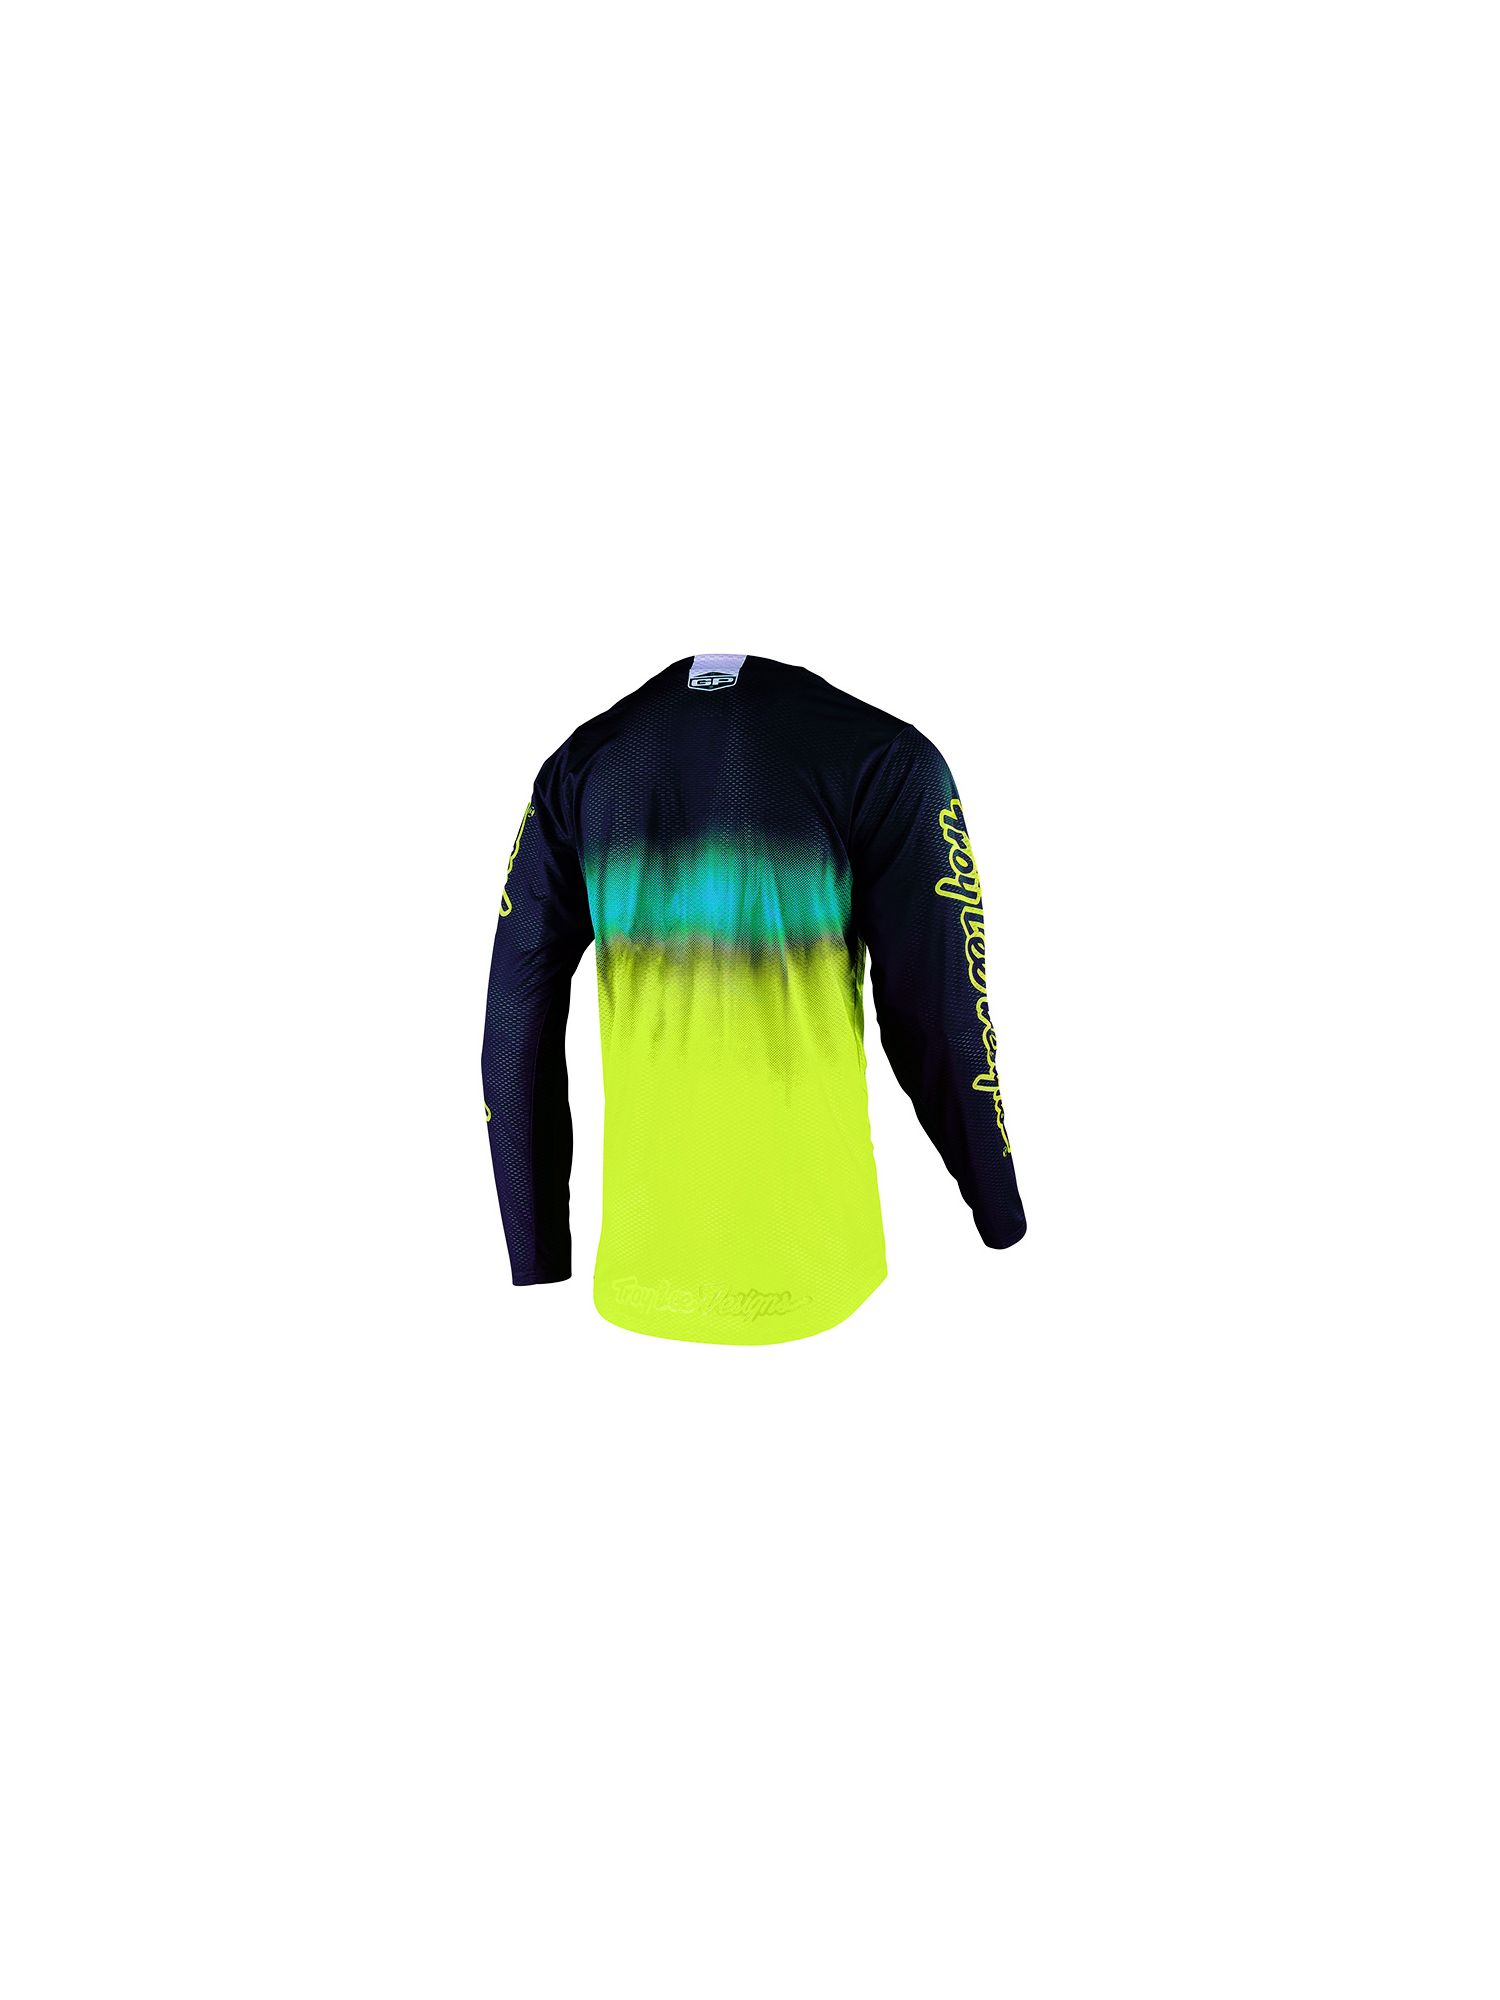 TDU224|GP AIR JERSEY[5colors]